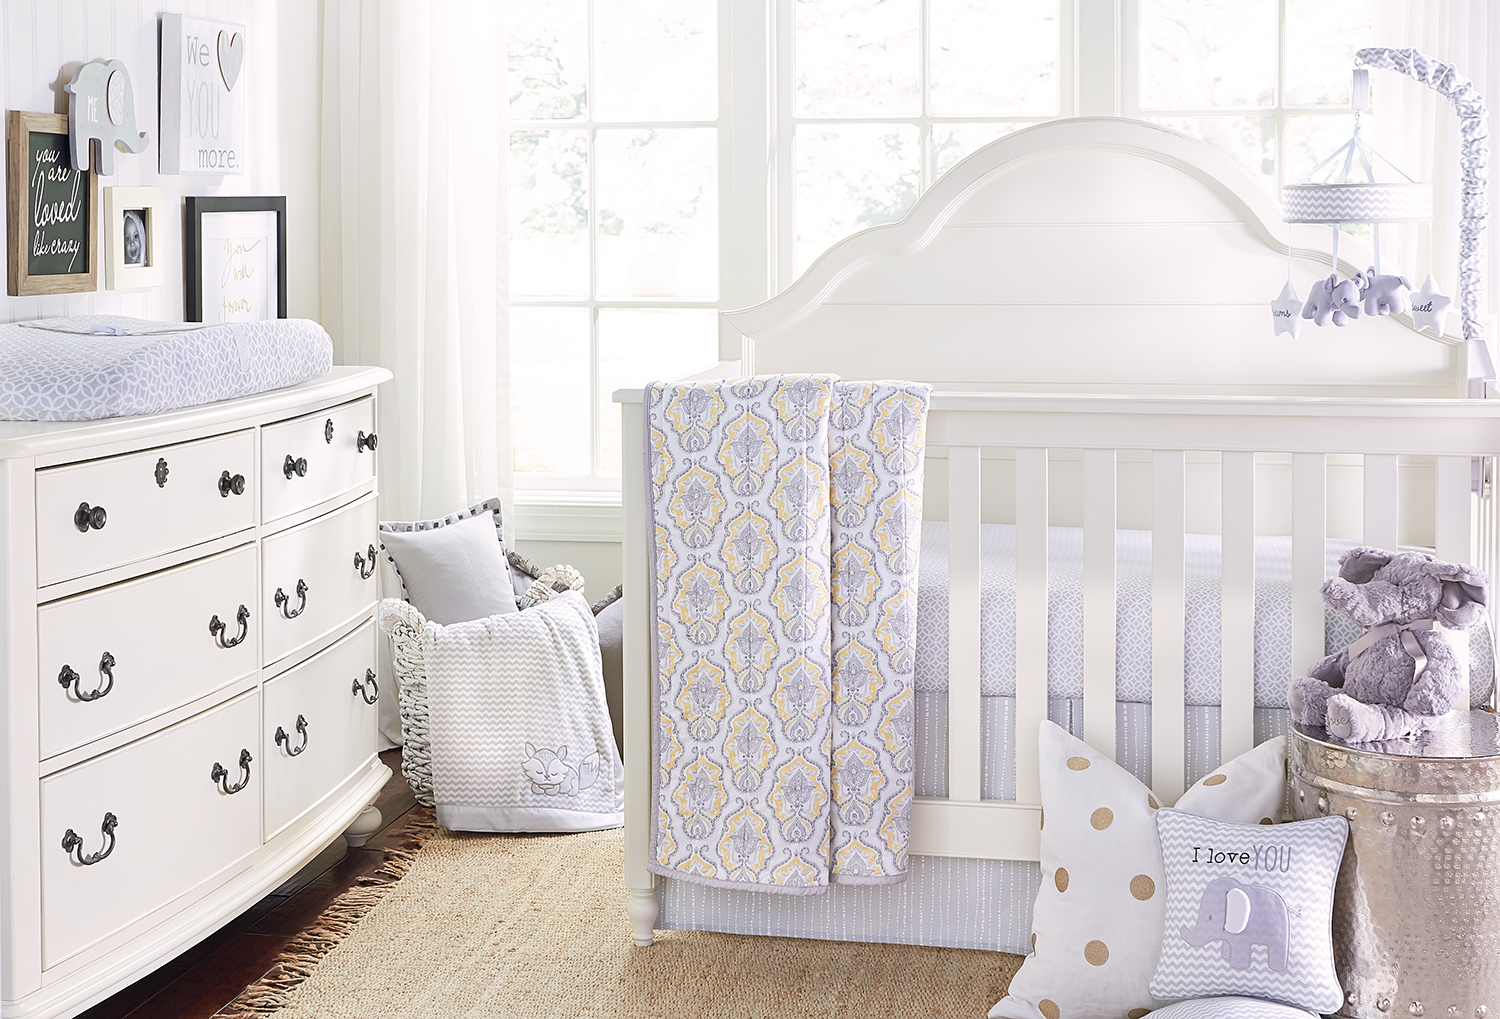 Interior nursery furniture wendy bellissimo nursery separates for girl. shown here with wendy  bellissimo inspirations bfmsmqe